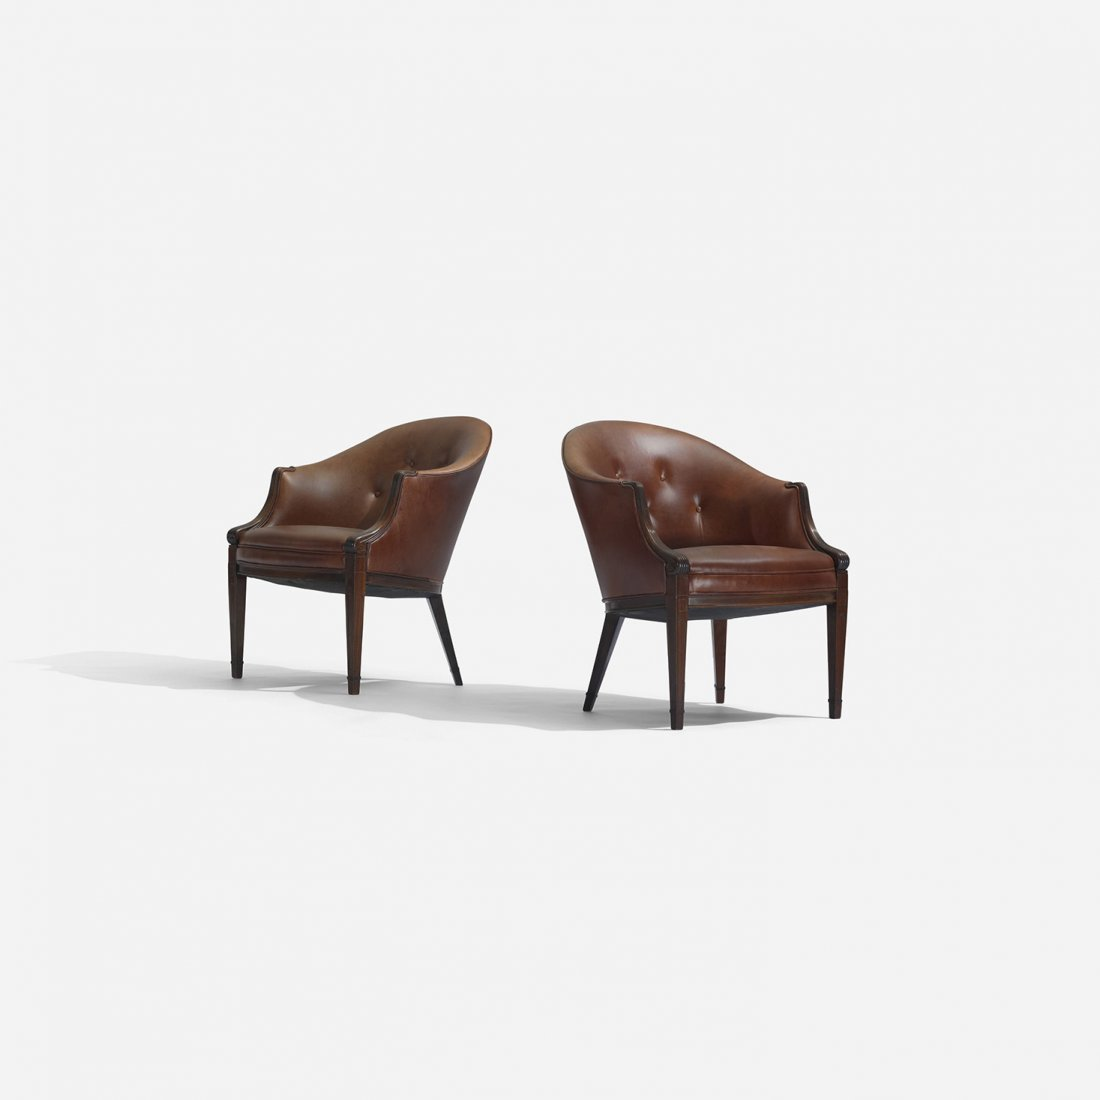 133: Frits Henningsen lounge chairs, pair